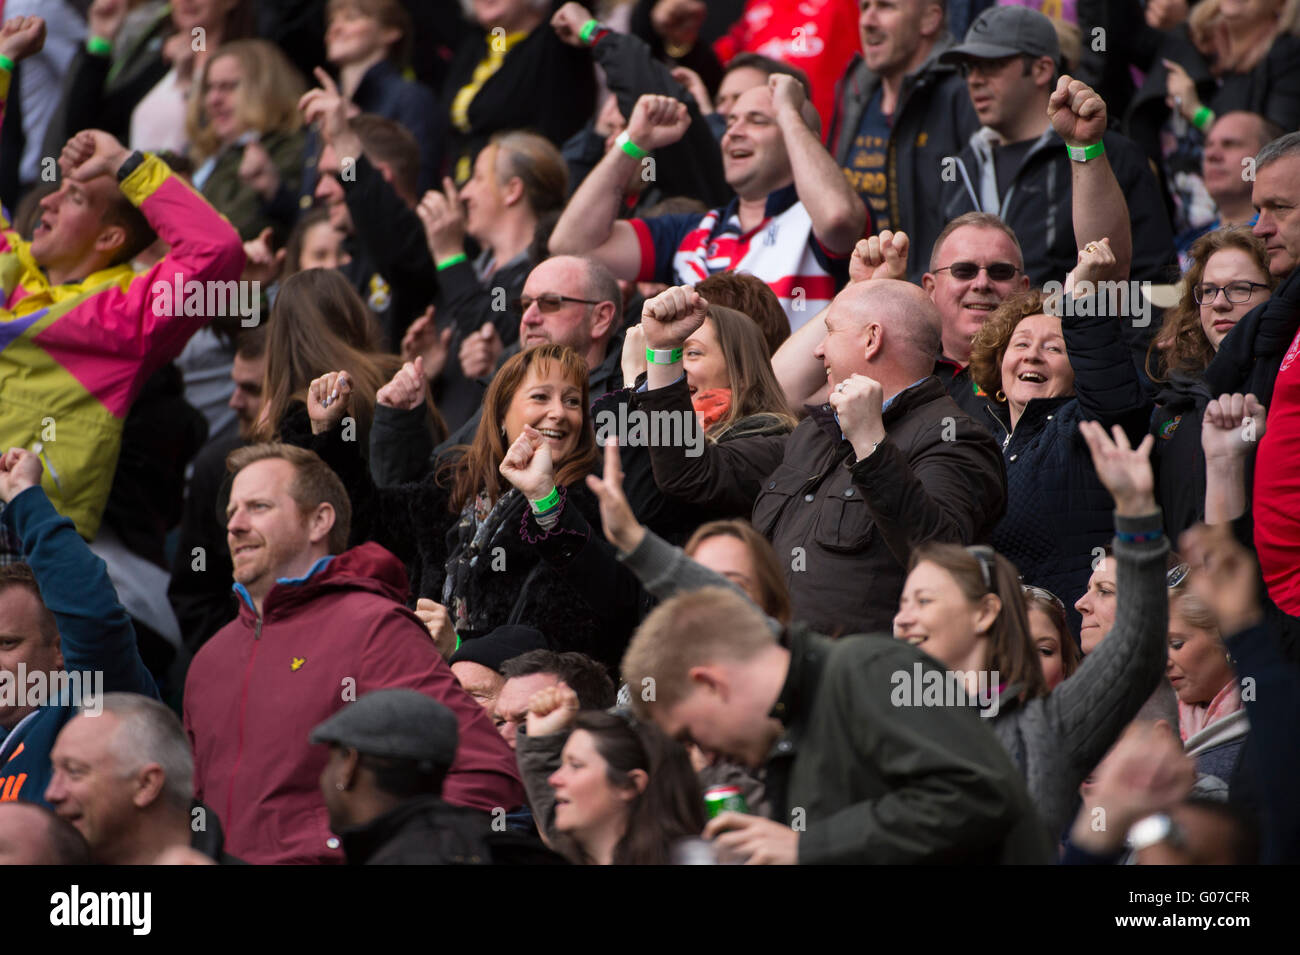 Twickenham Stadium, UK. 30th April 2016. Capacity crowd of 80,000 at a sell-out match watch the British Army take - Stock Image